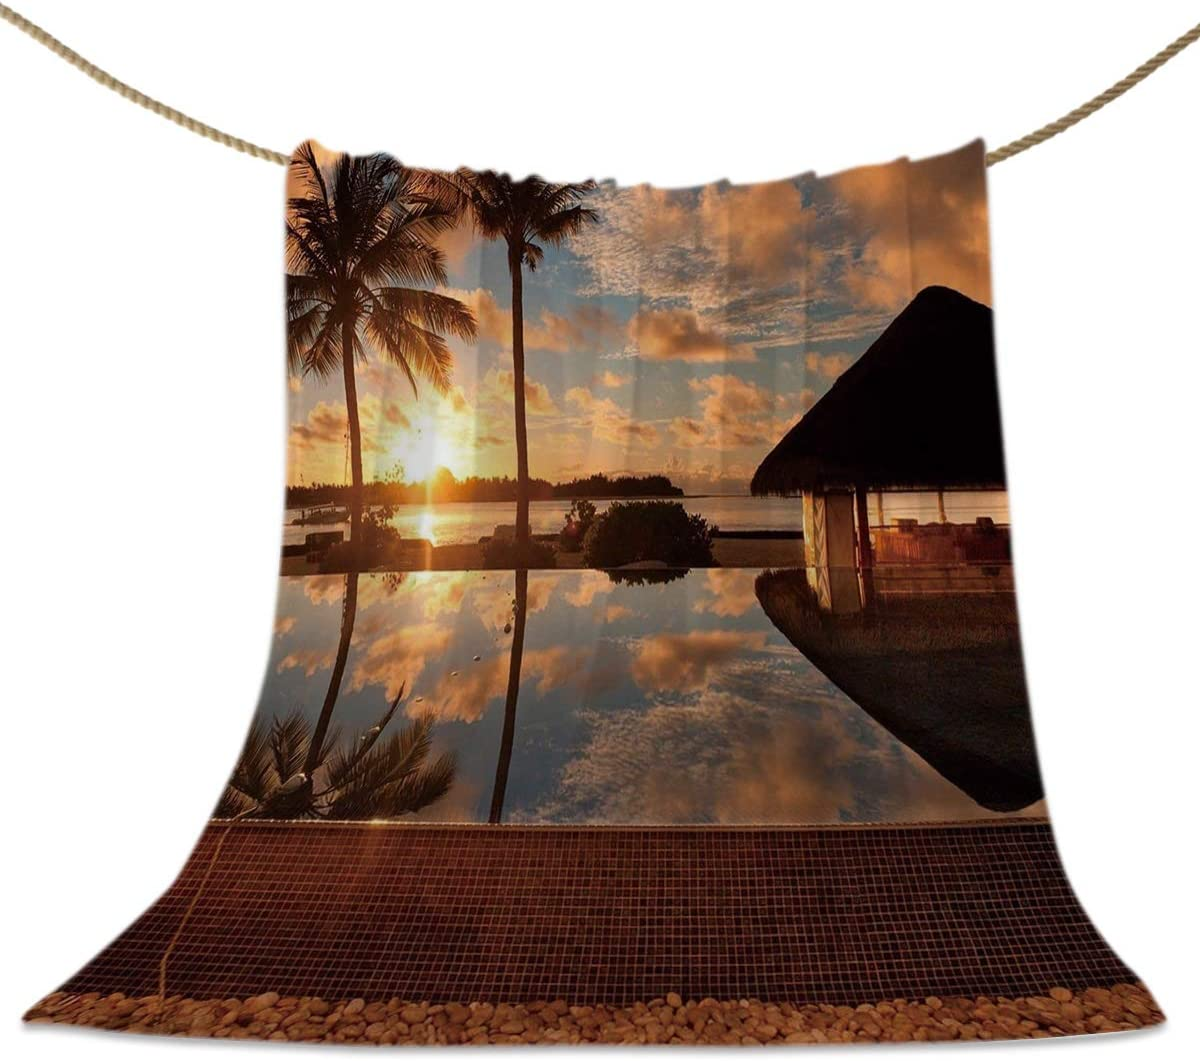 Limited Special Price HELLOWINK Throw Blankets for Couch Max 43% OFF Bed F Flannel Tropical Sofa